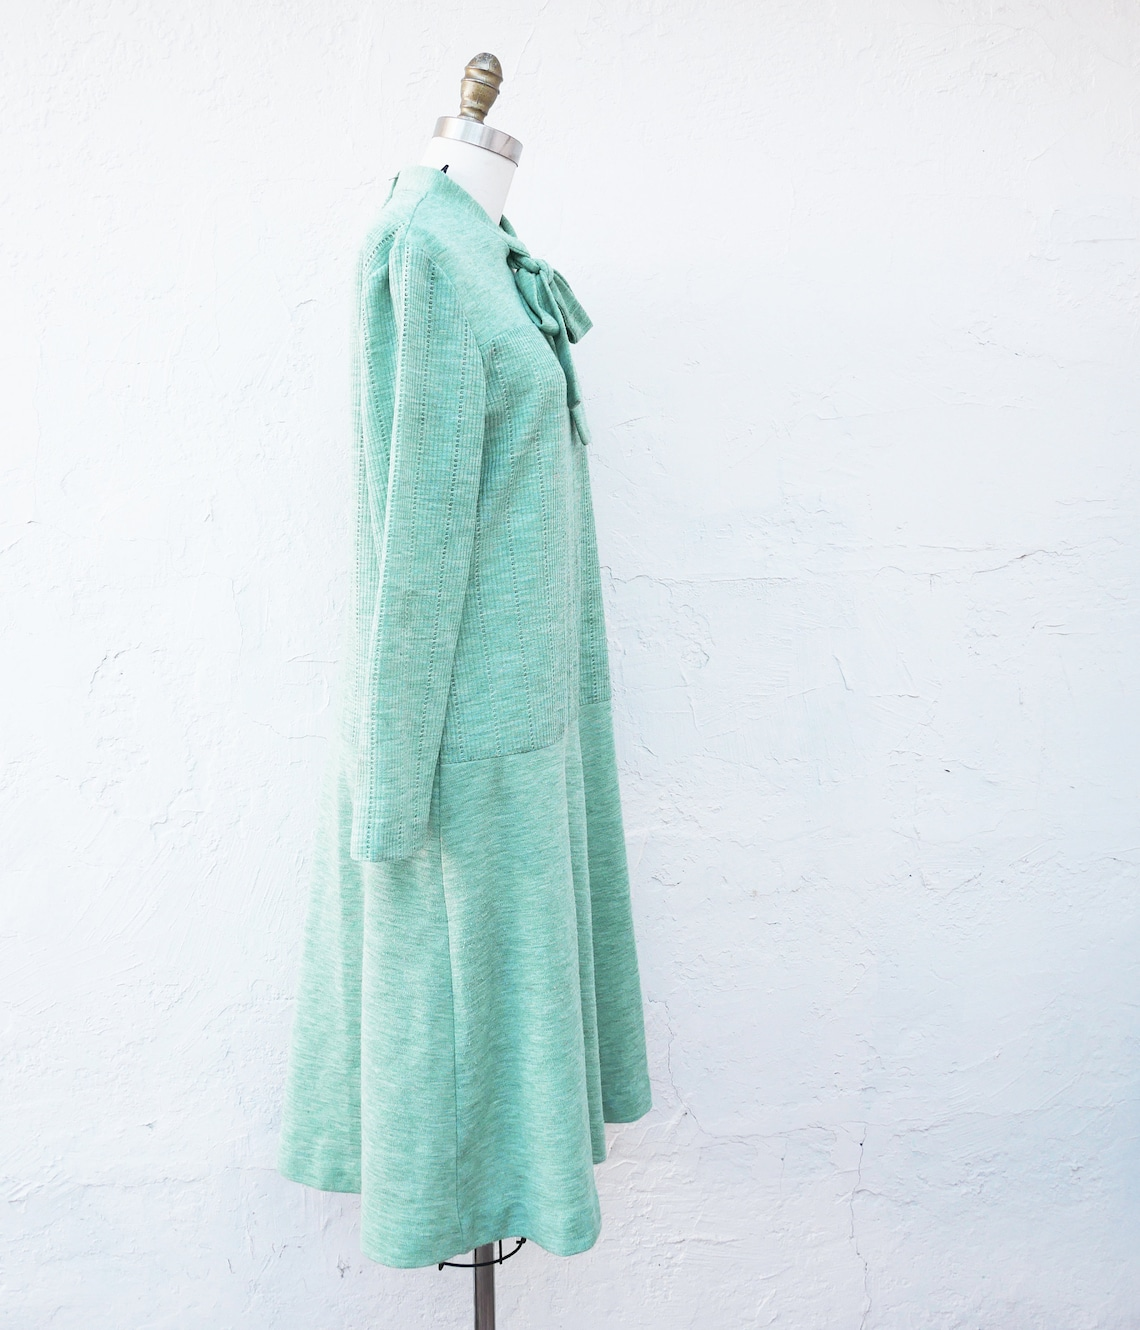 Warm Light Green 1970s Knit Dress